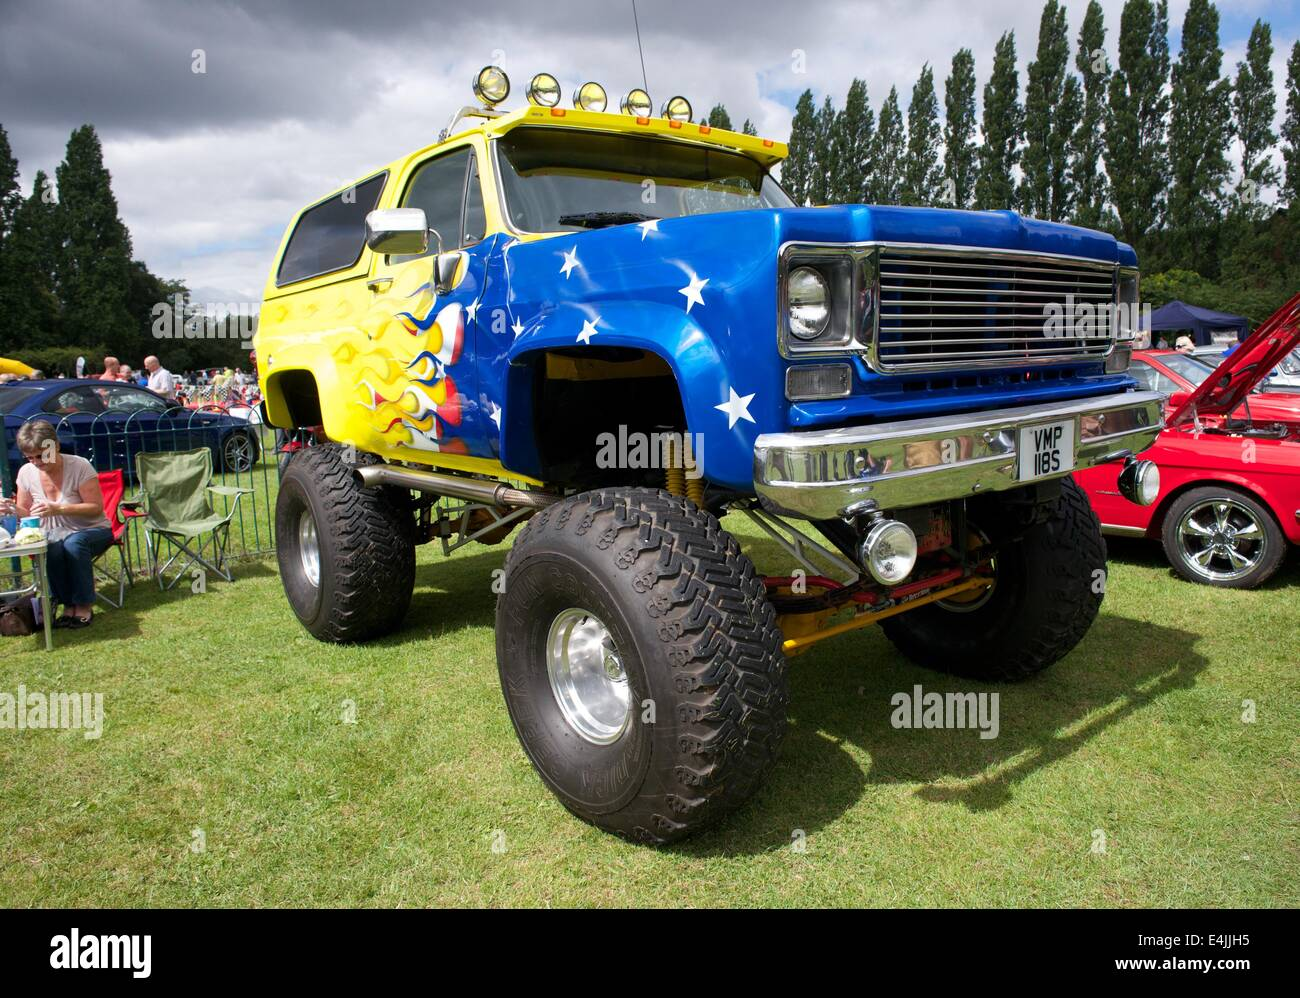 Monster Car Stock Photos Monster Car Stock Images Alamy - Monster car show